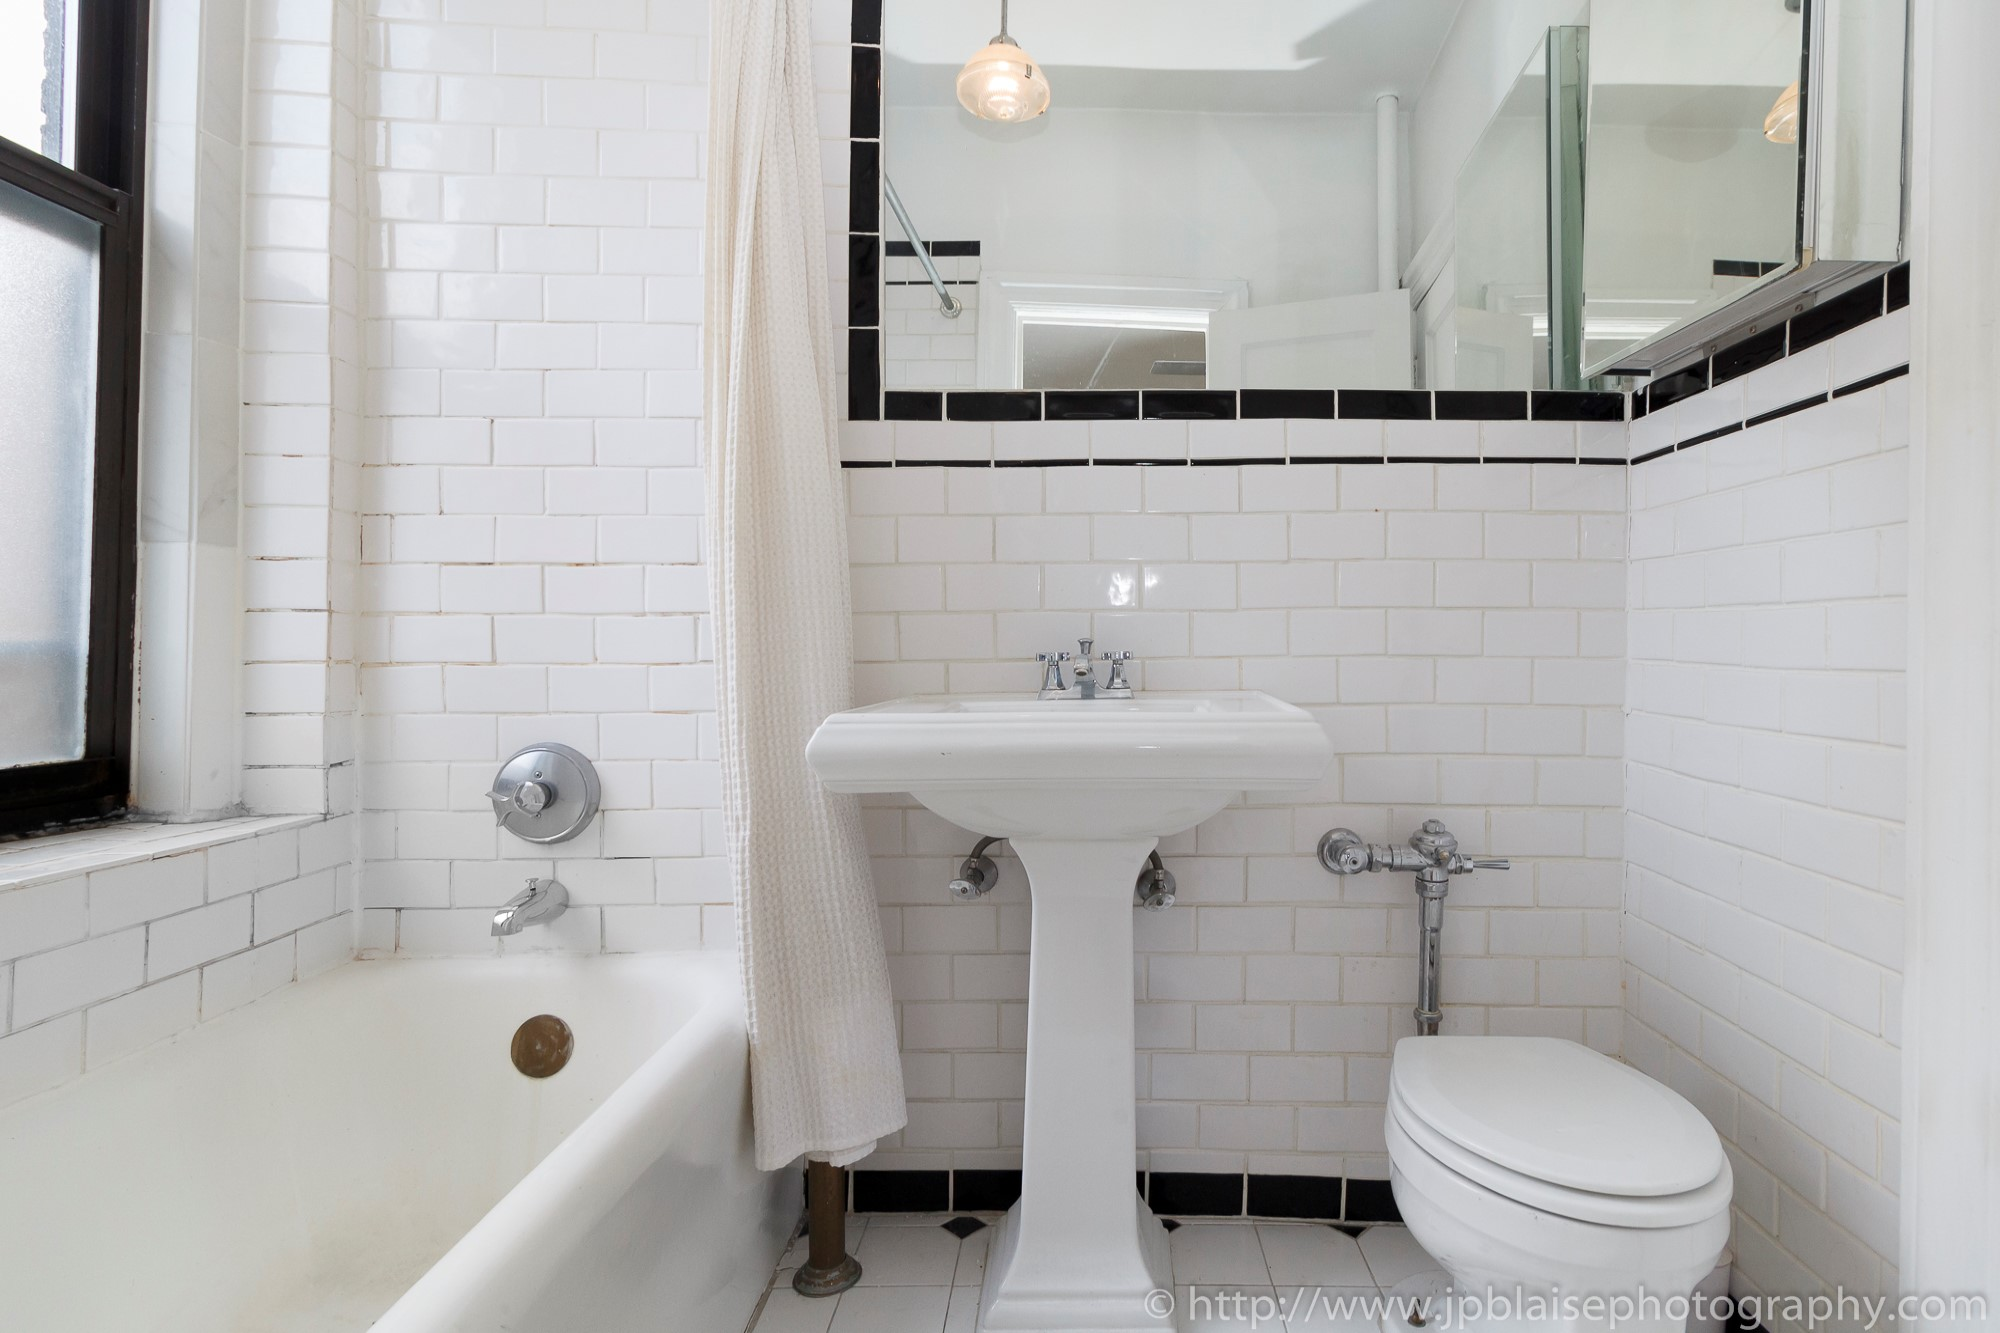 NYC apartment photographer one bedroom coop for sale west village ny real estate photography bathroom